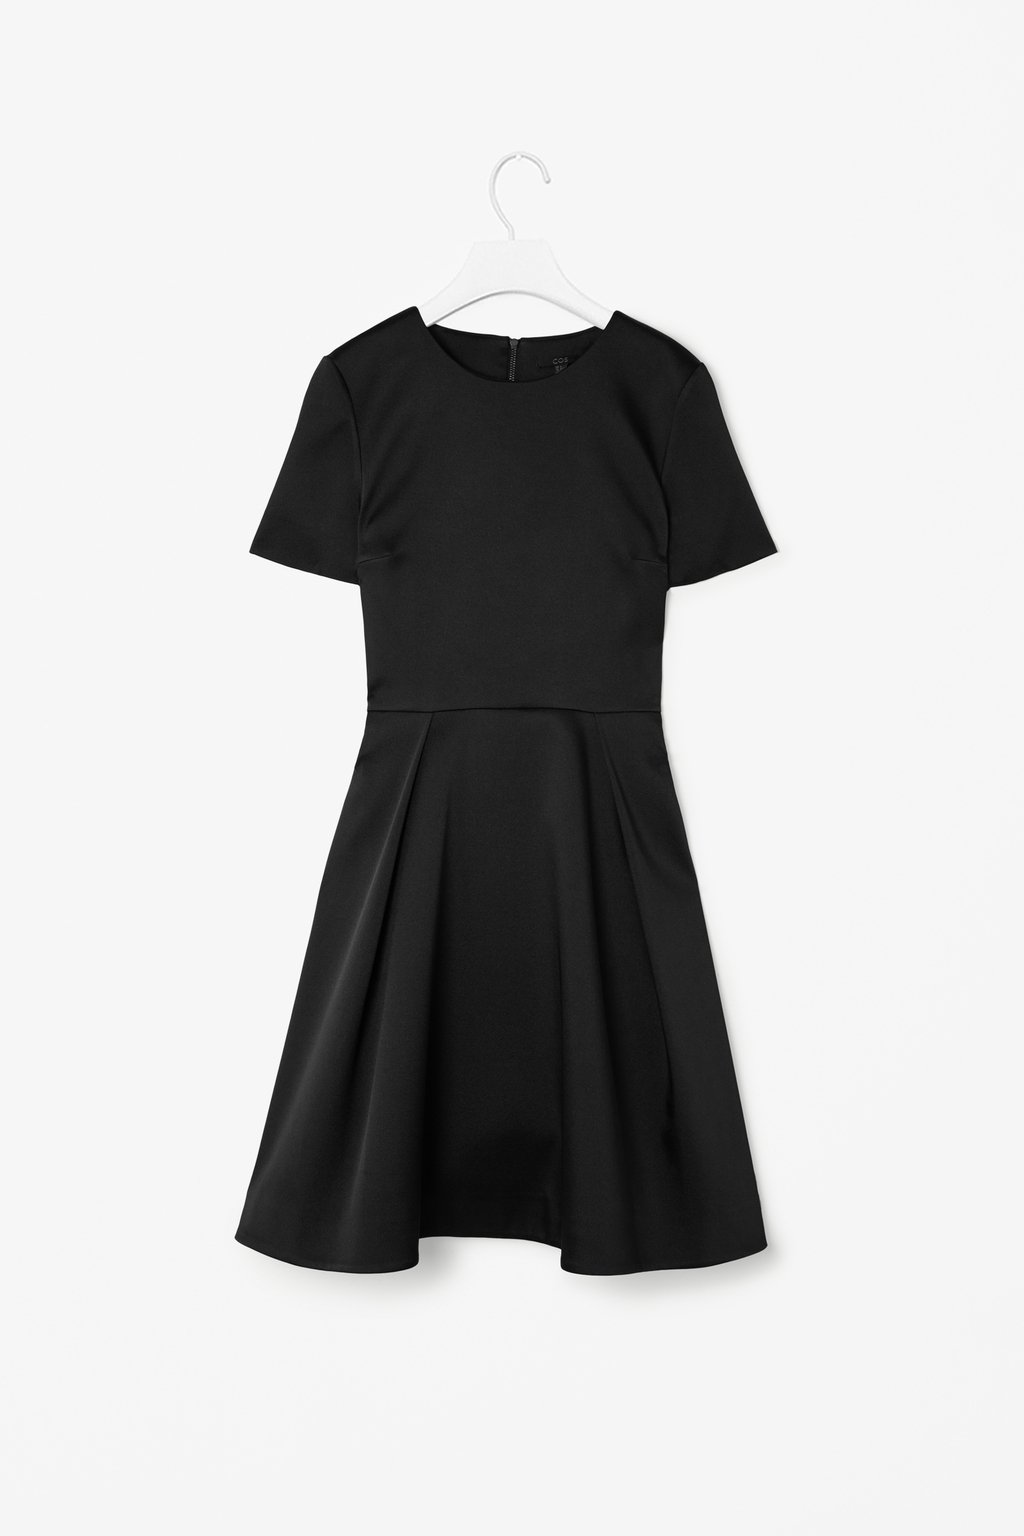 Satin Pleated Dress - pattern: plain; style: prom dress; predominant colour: black; occasions: evening, work, occasion, creative work; length: just above the knee; fit: fitted at waist & bust; fibres: polyester/polyamide - stretch; neckline: crew; hip detail: adds bulk at the hips; sleeve length: short sleeve; sleeve style: standard; texture group: structured shiny - satin/tafetta/silk etc.; pattern type: fabric; season: s/s 2014